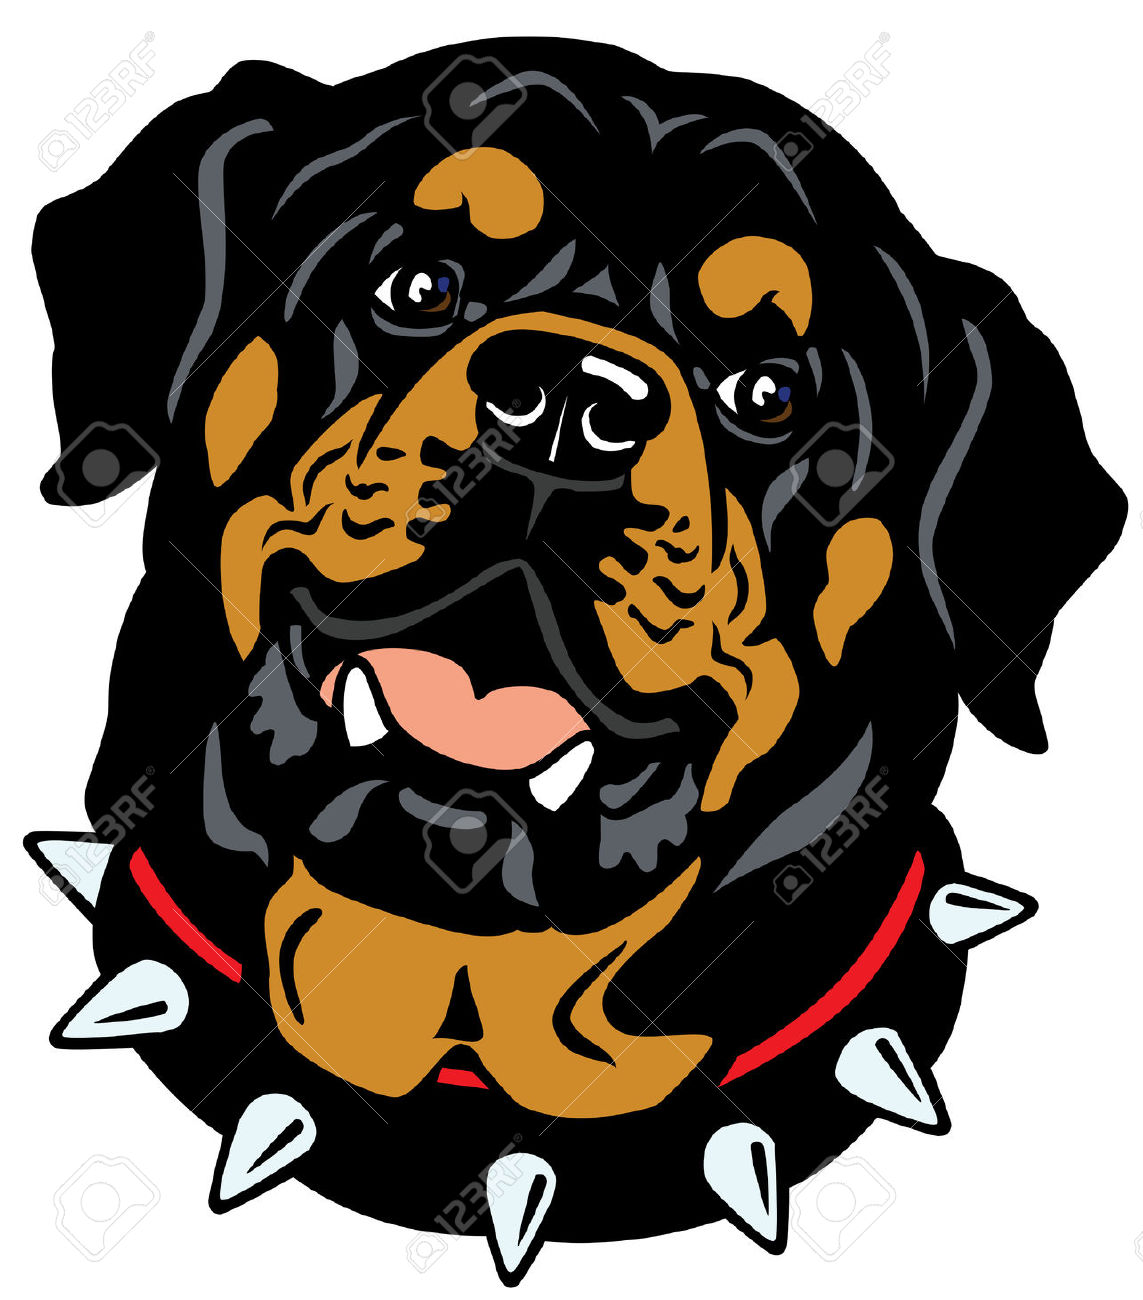 714 Rottweiler Cliparts, Stock Vector And Royalty Free Rottweiler.